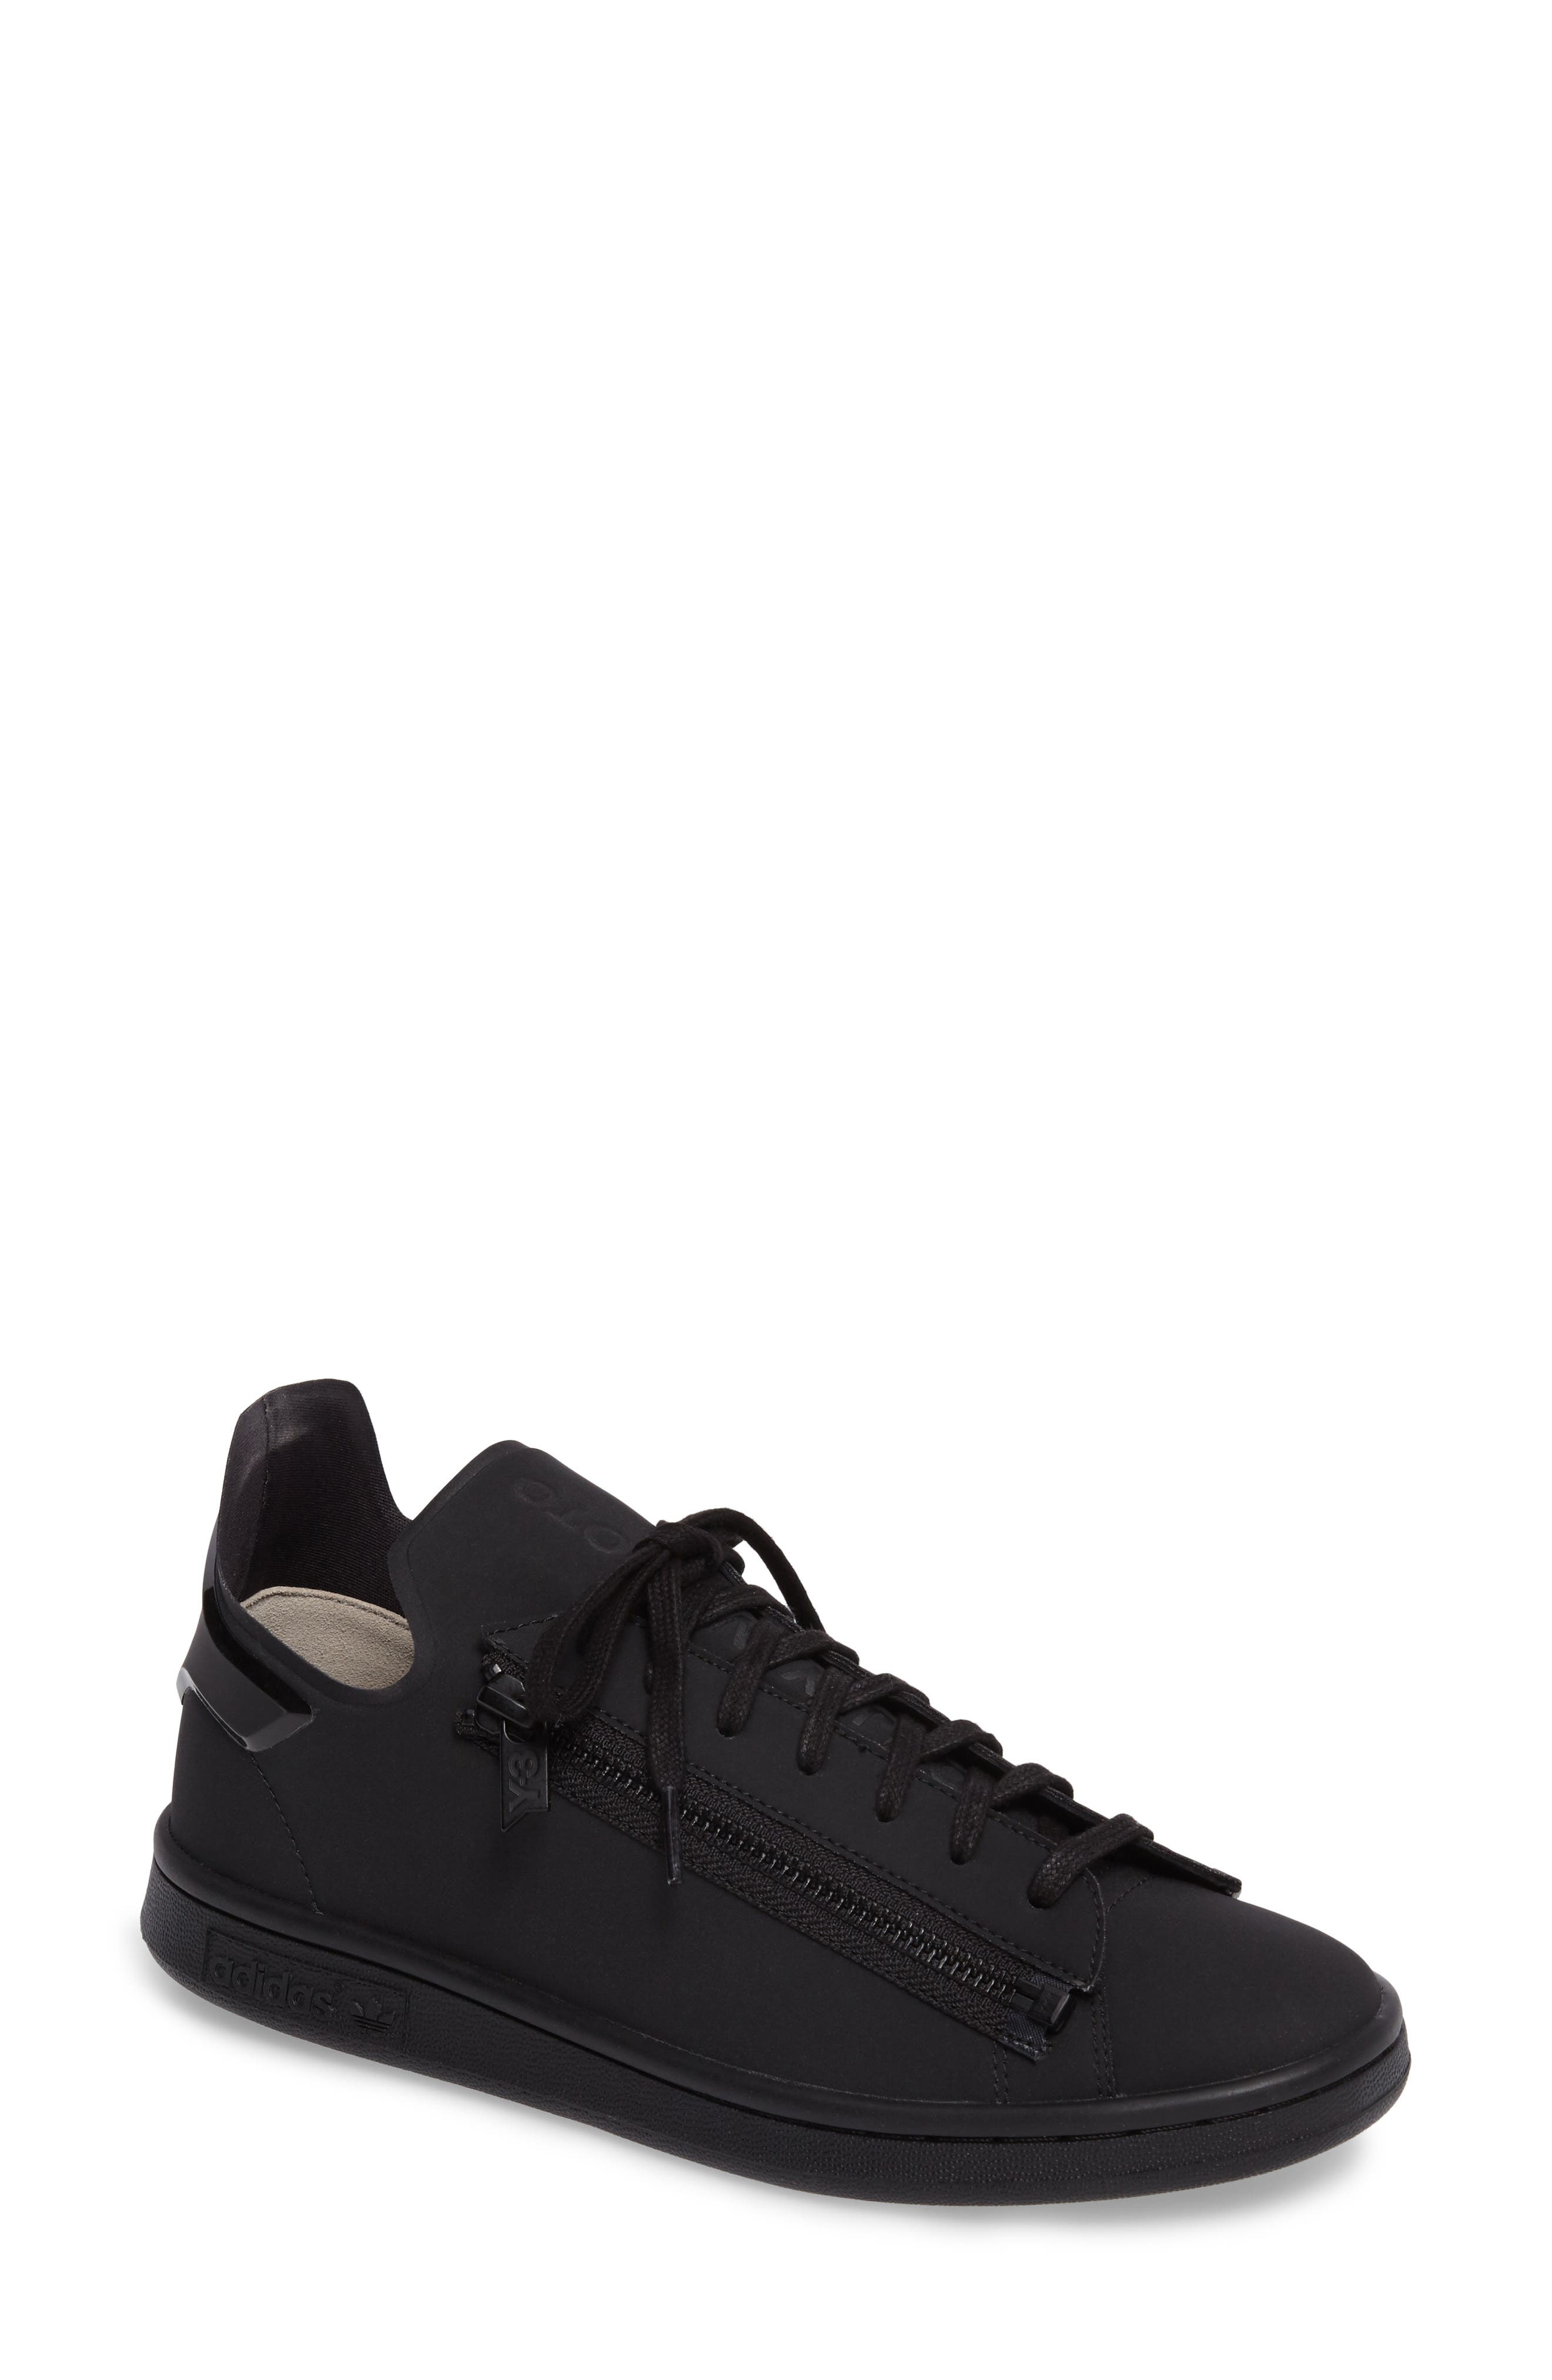 Stan Low Top Sneaker,                             Main thumbnail 1, color,                             Core Black